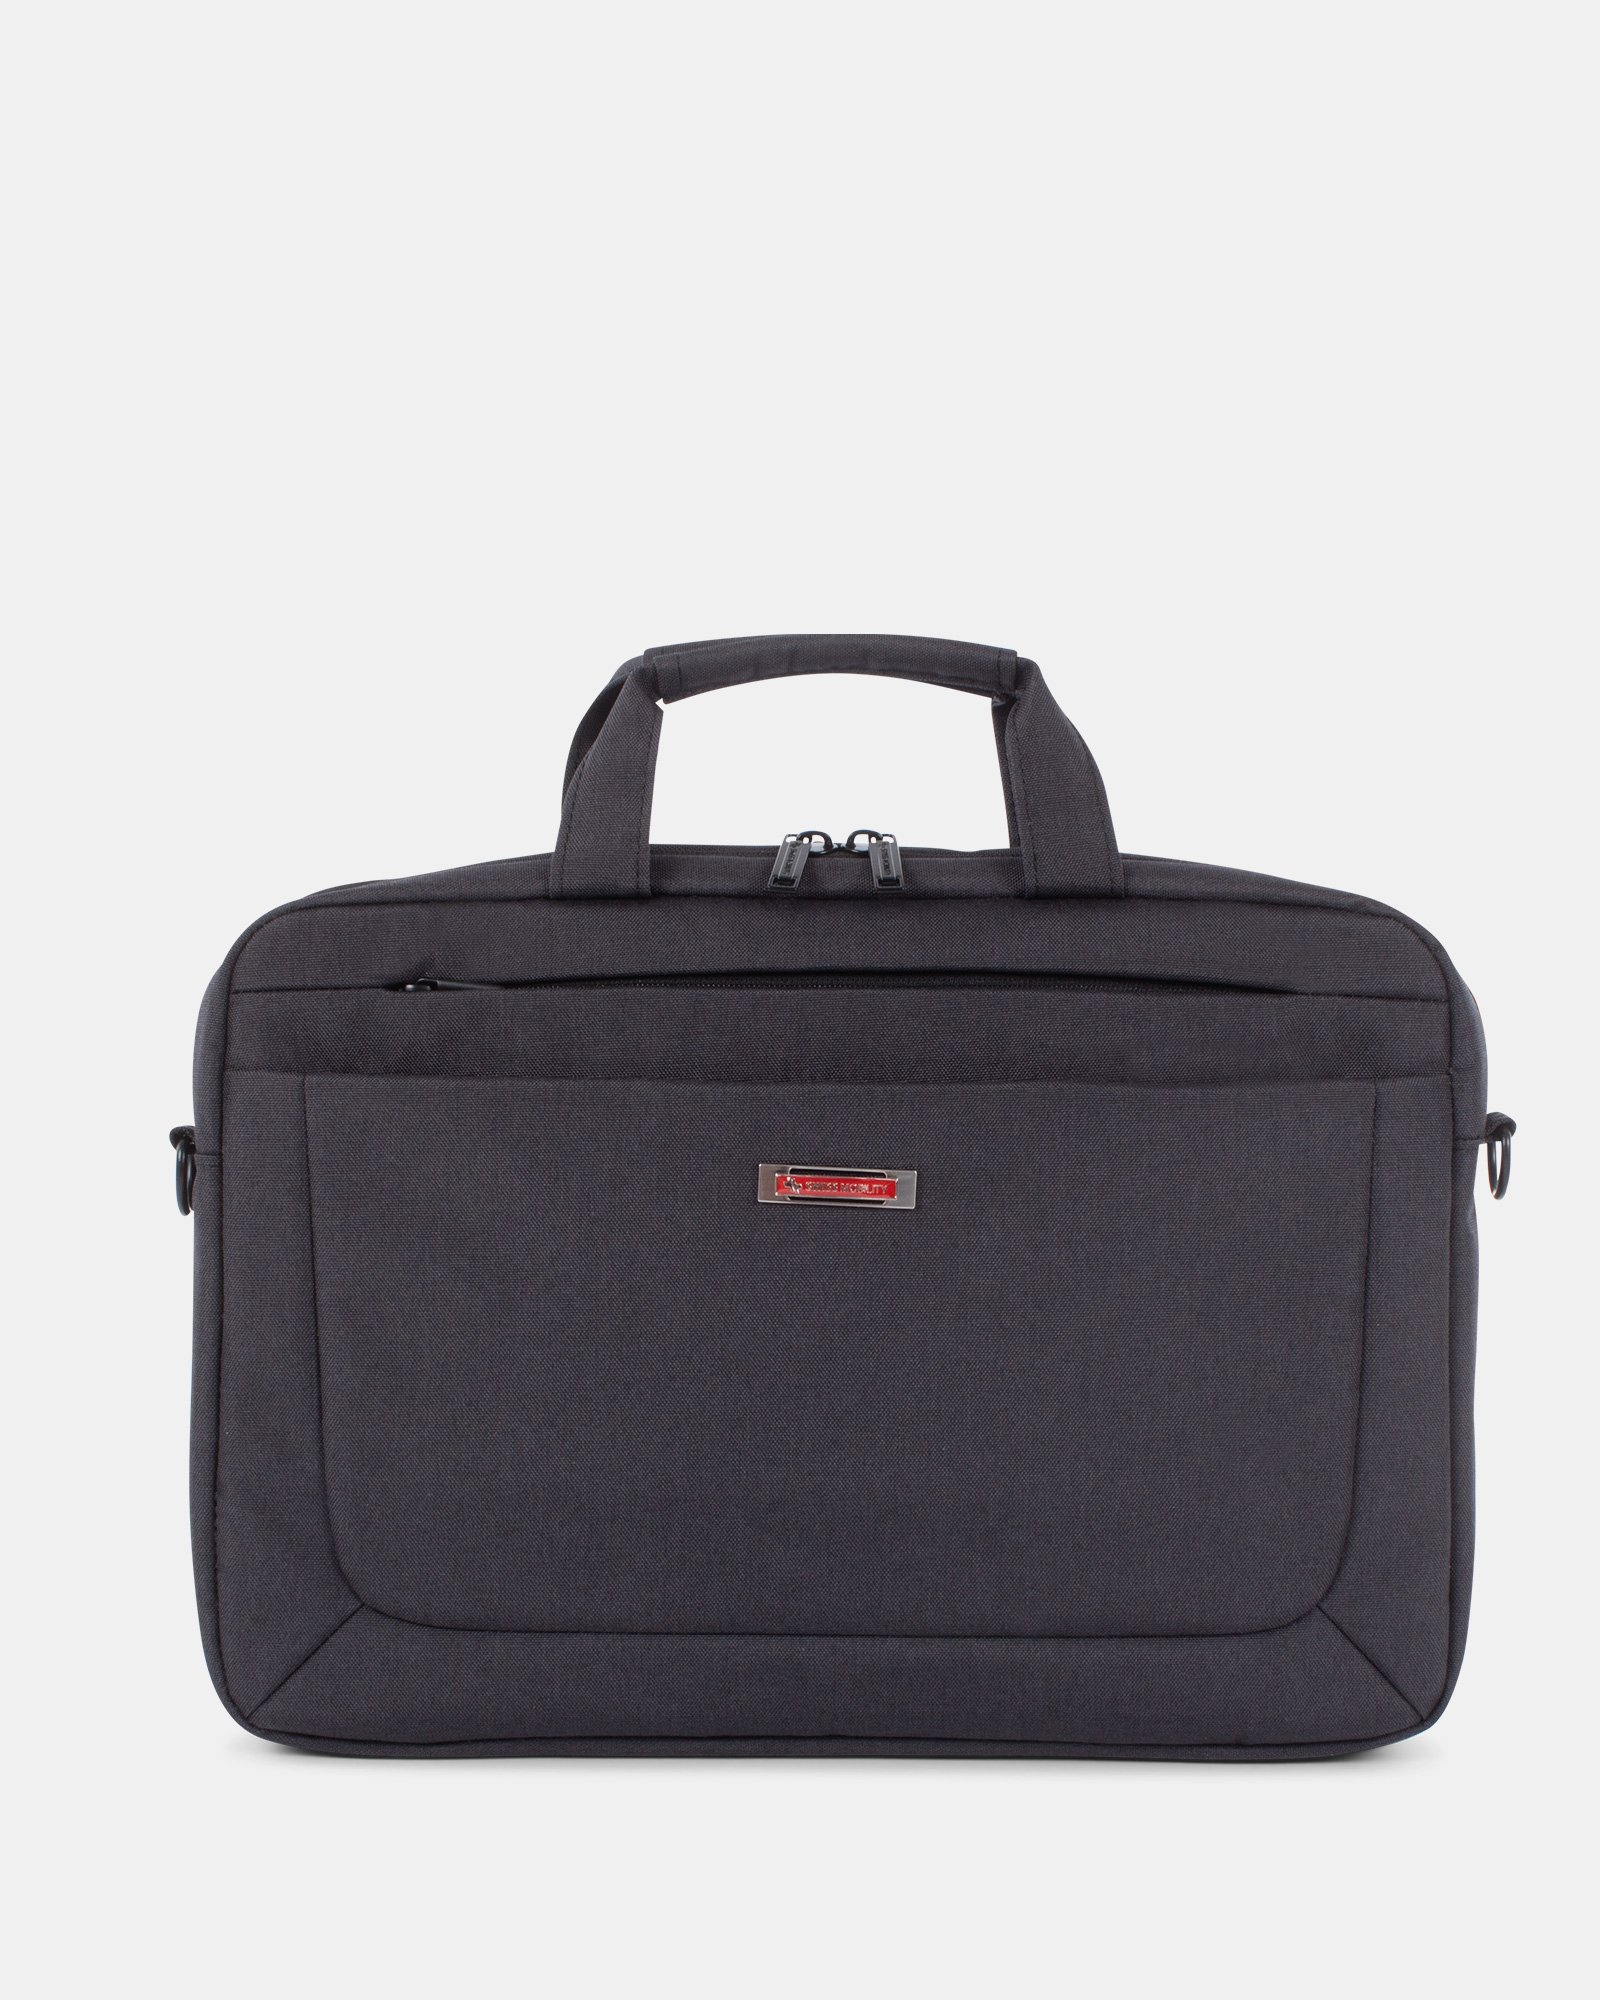 Cadence – Soft Briefcase – Double Compartment - Swiss Mobility - Zoom